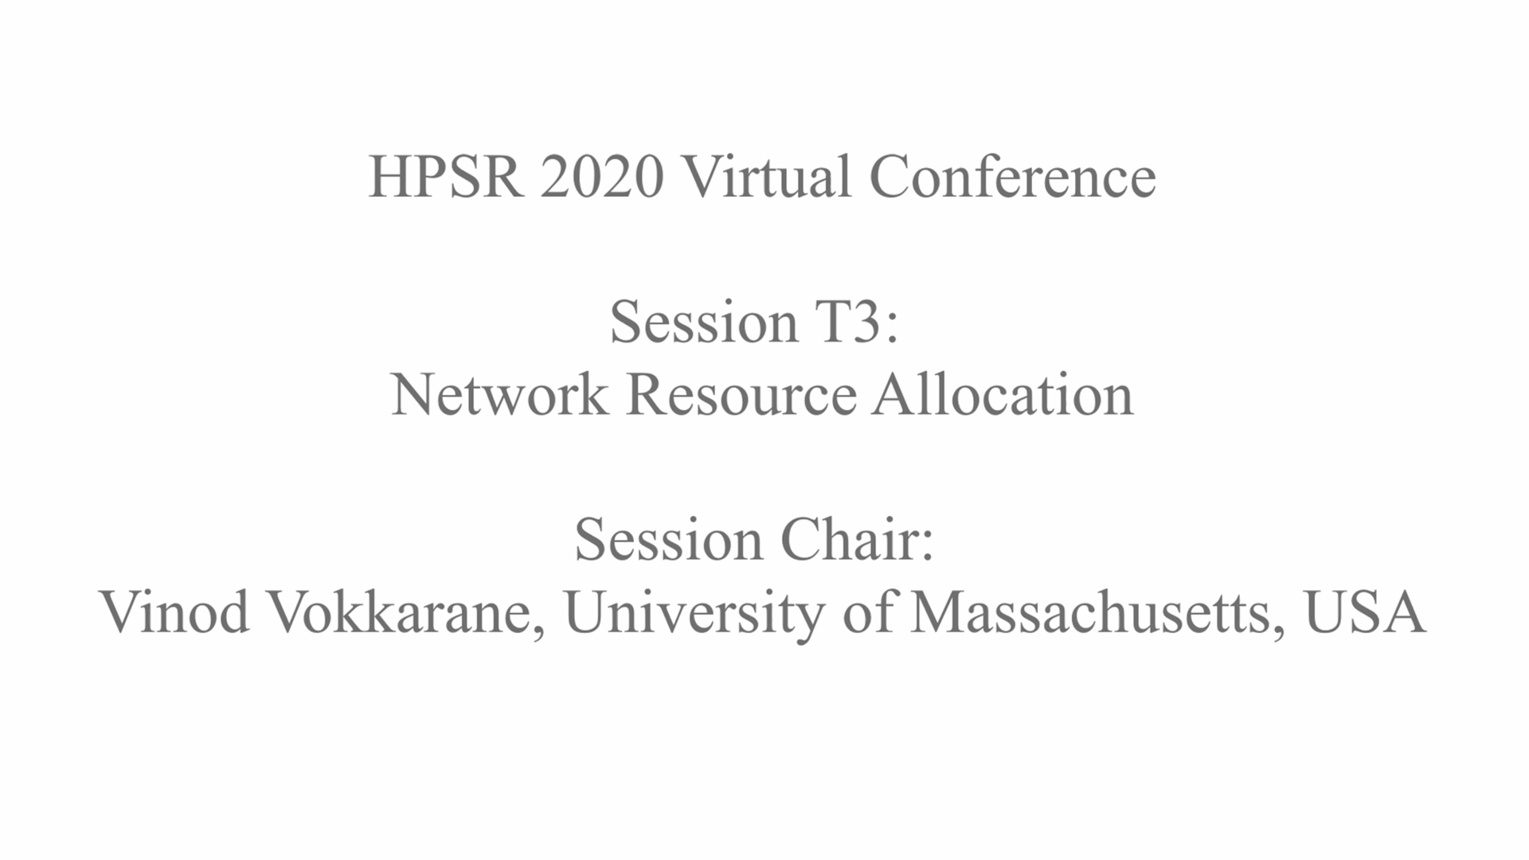 Network Resource Allocation: Technical Session 3 - HPSR 2020 Virtual Conference